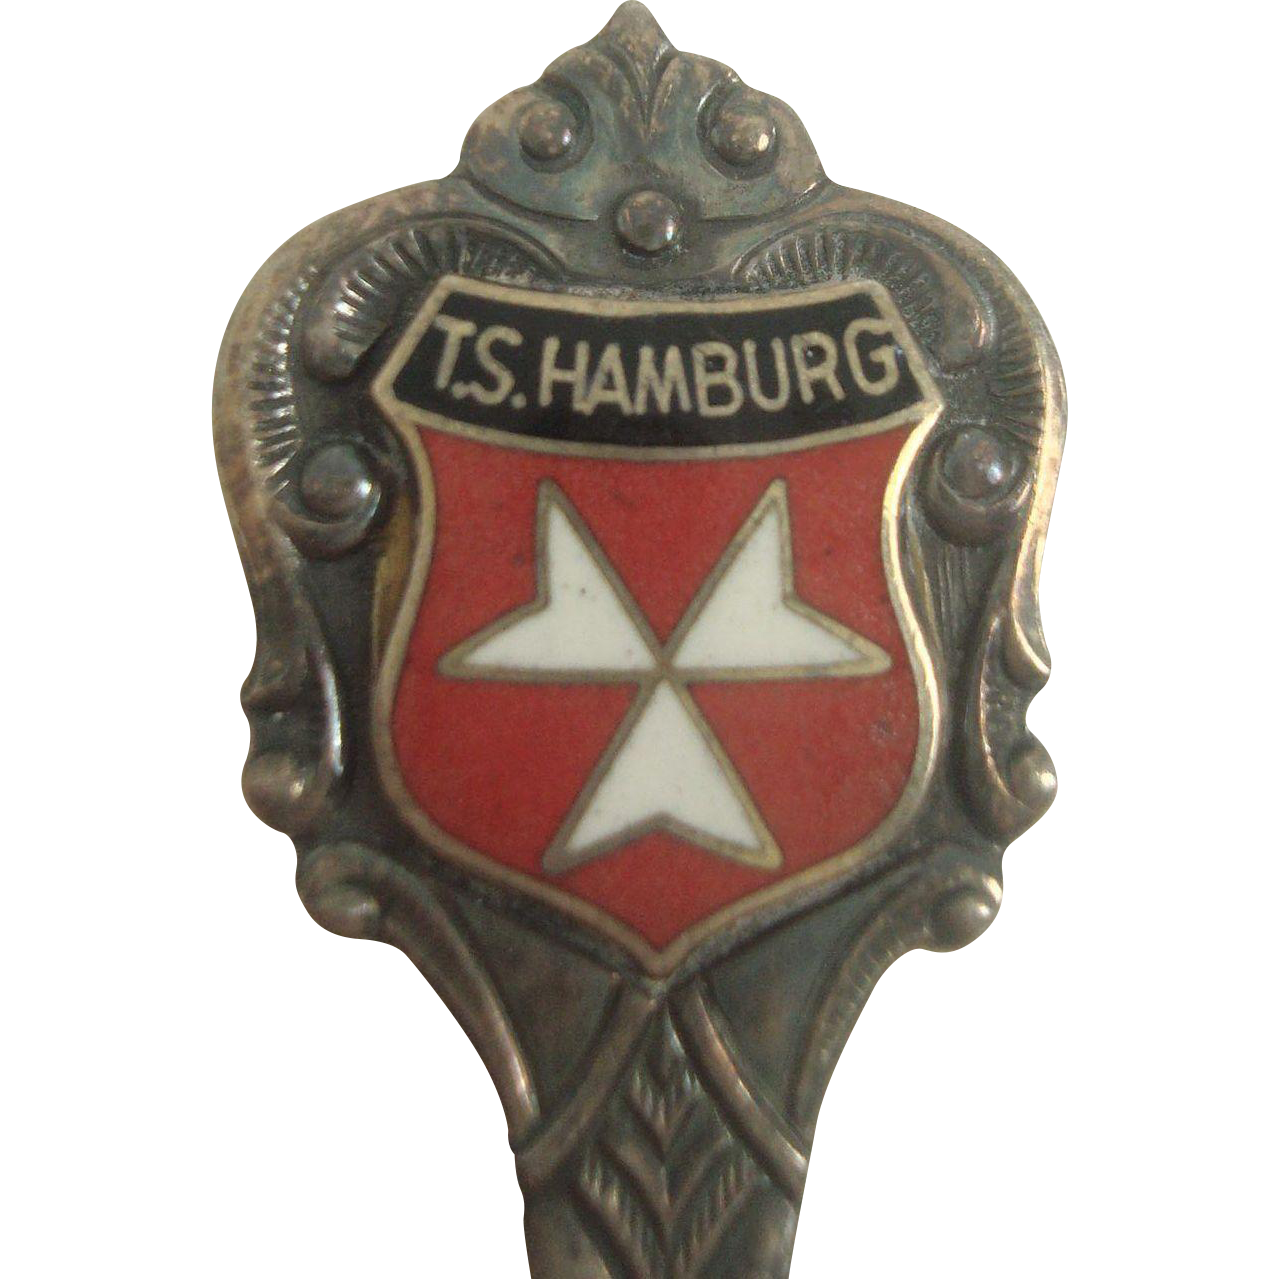 T.S. Hamburg German Atlantic Line 800 Silver Souvenir Spoon